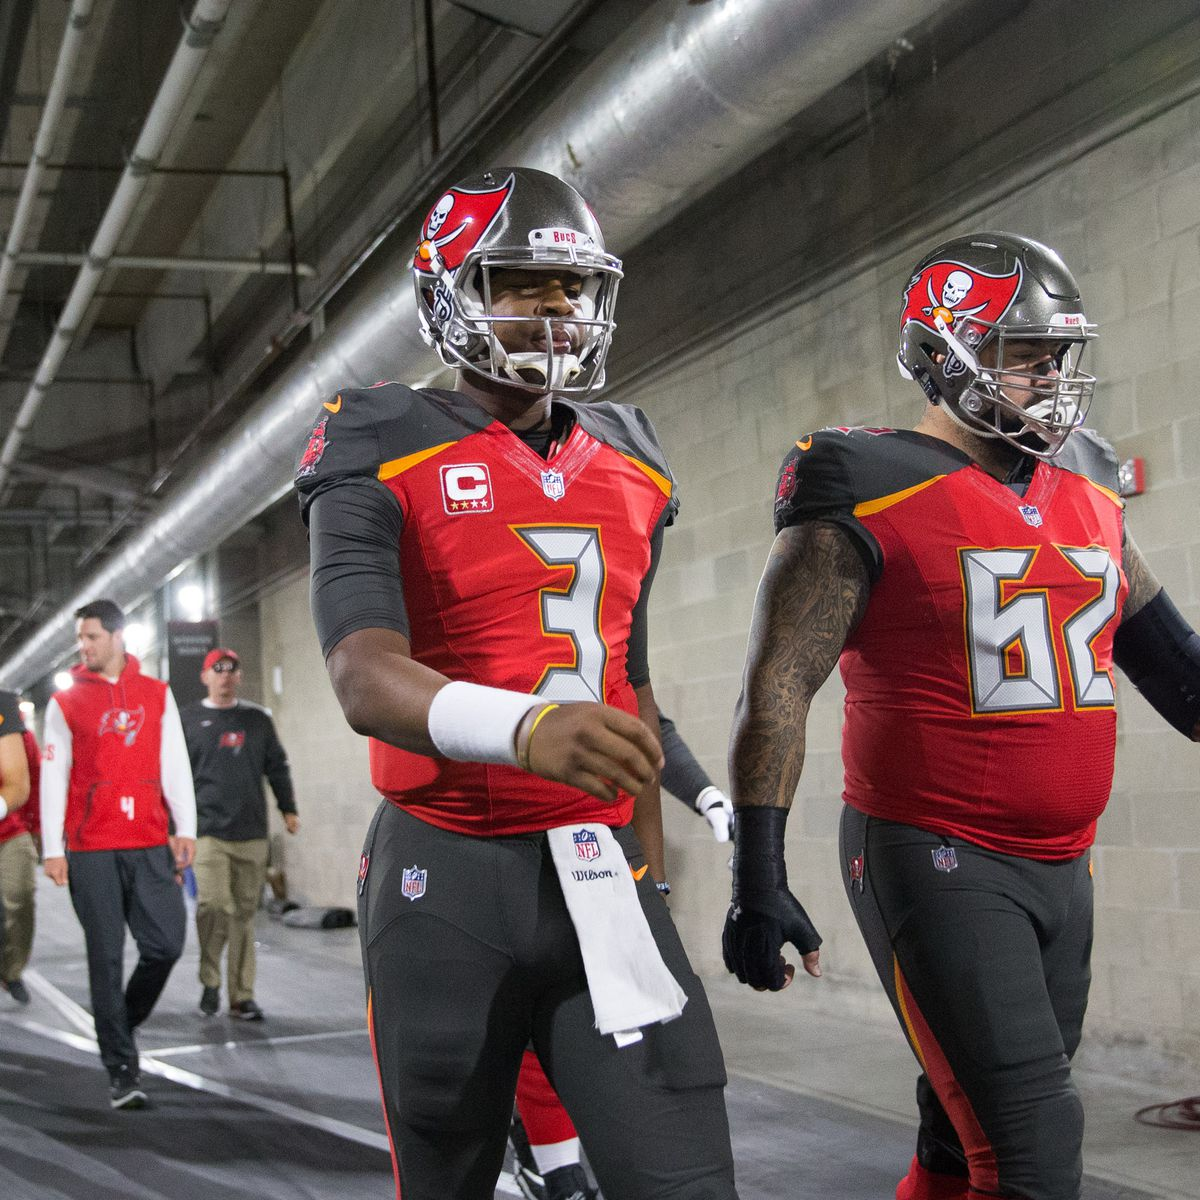 release date 21408 497bc Bucs uniform ranked 32nd among NFL teams, because there isn ...